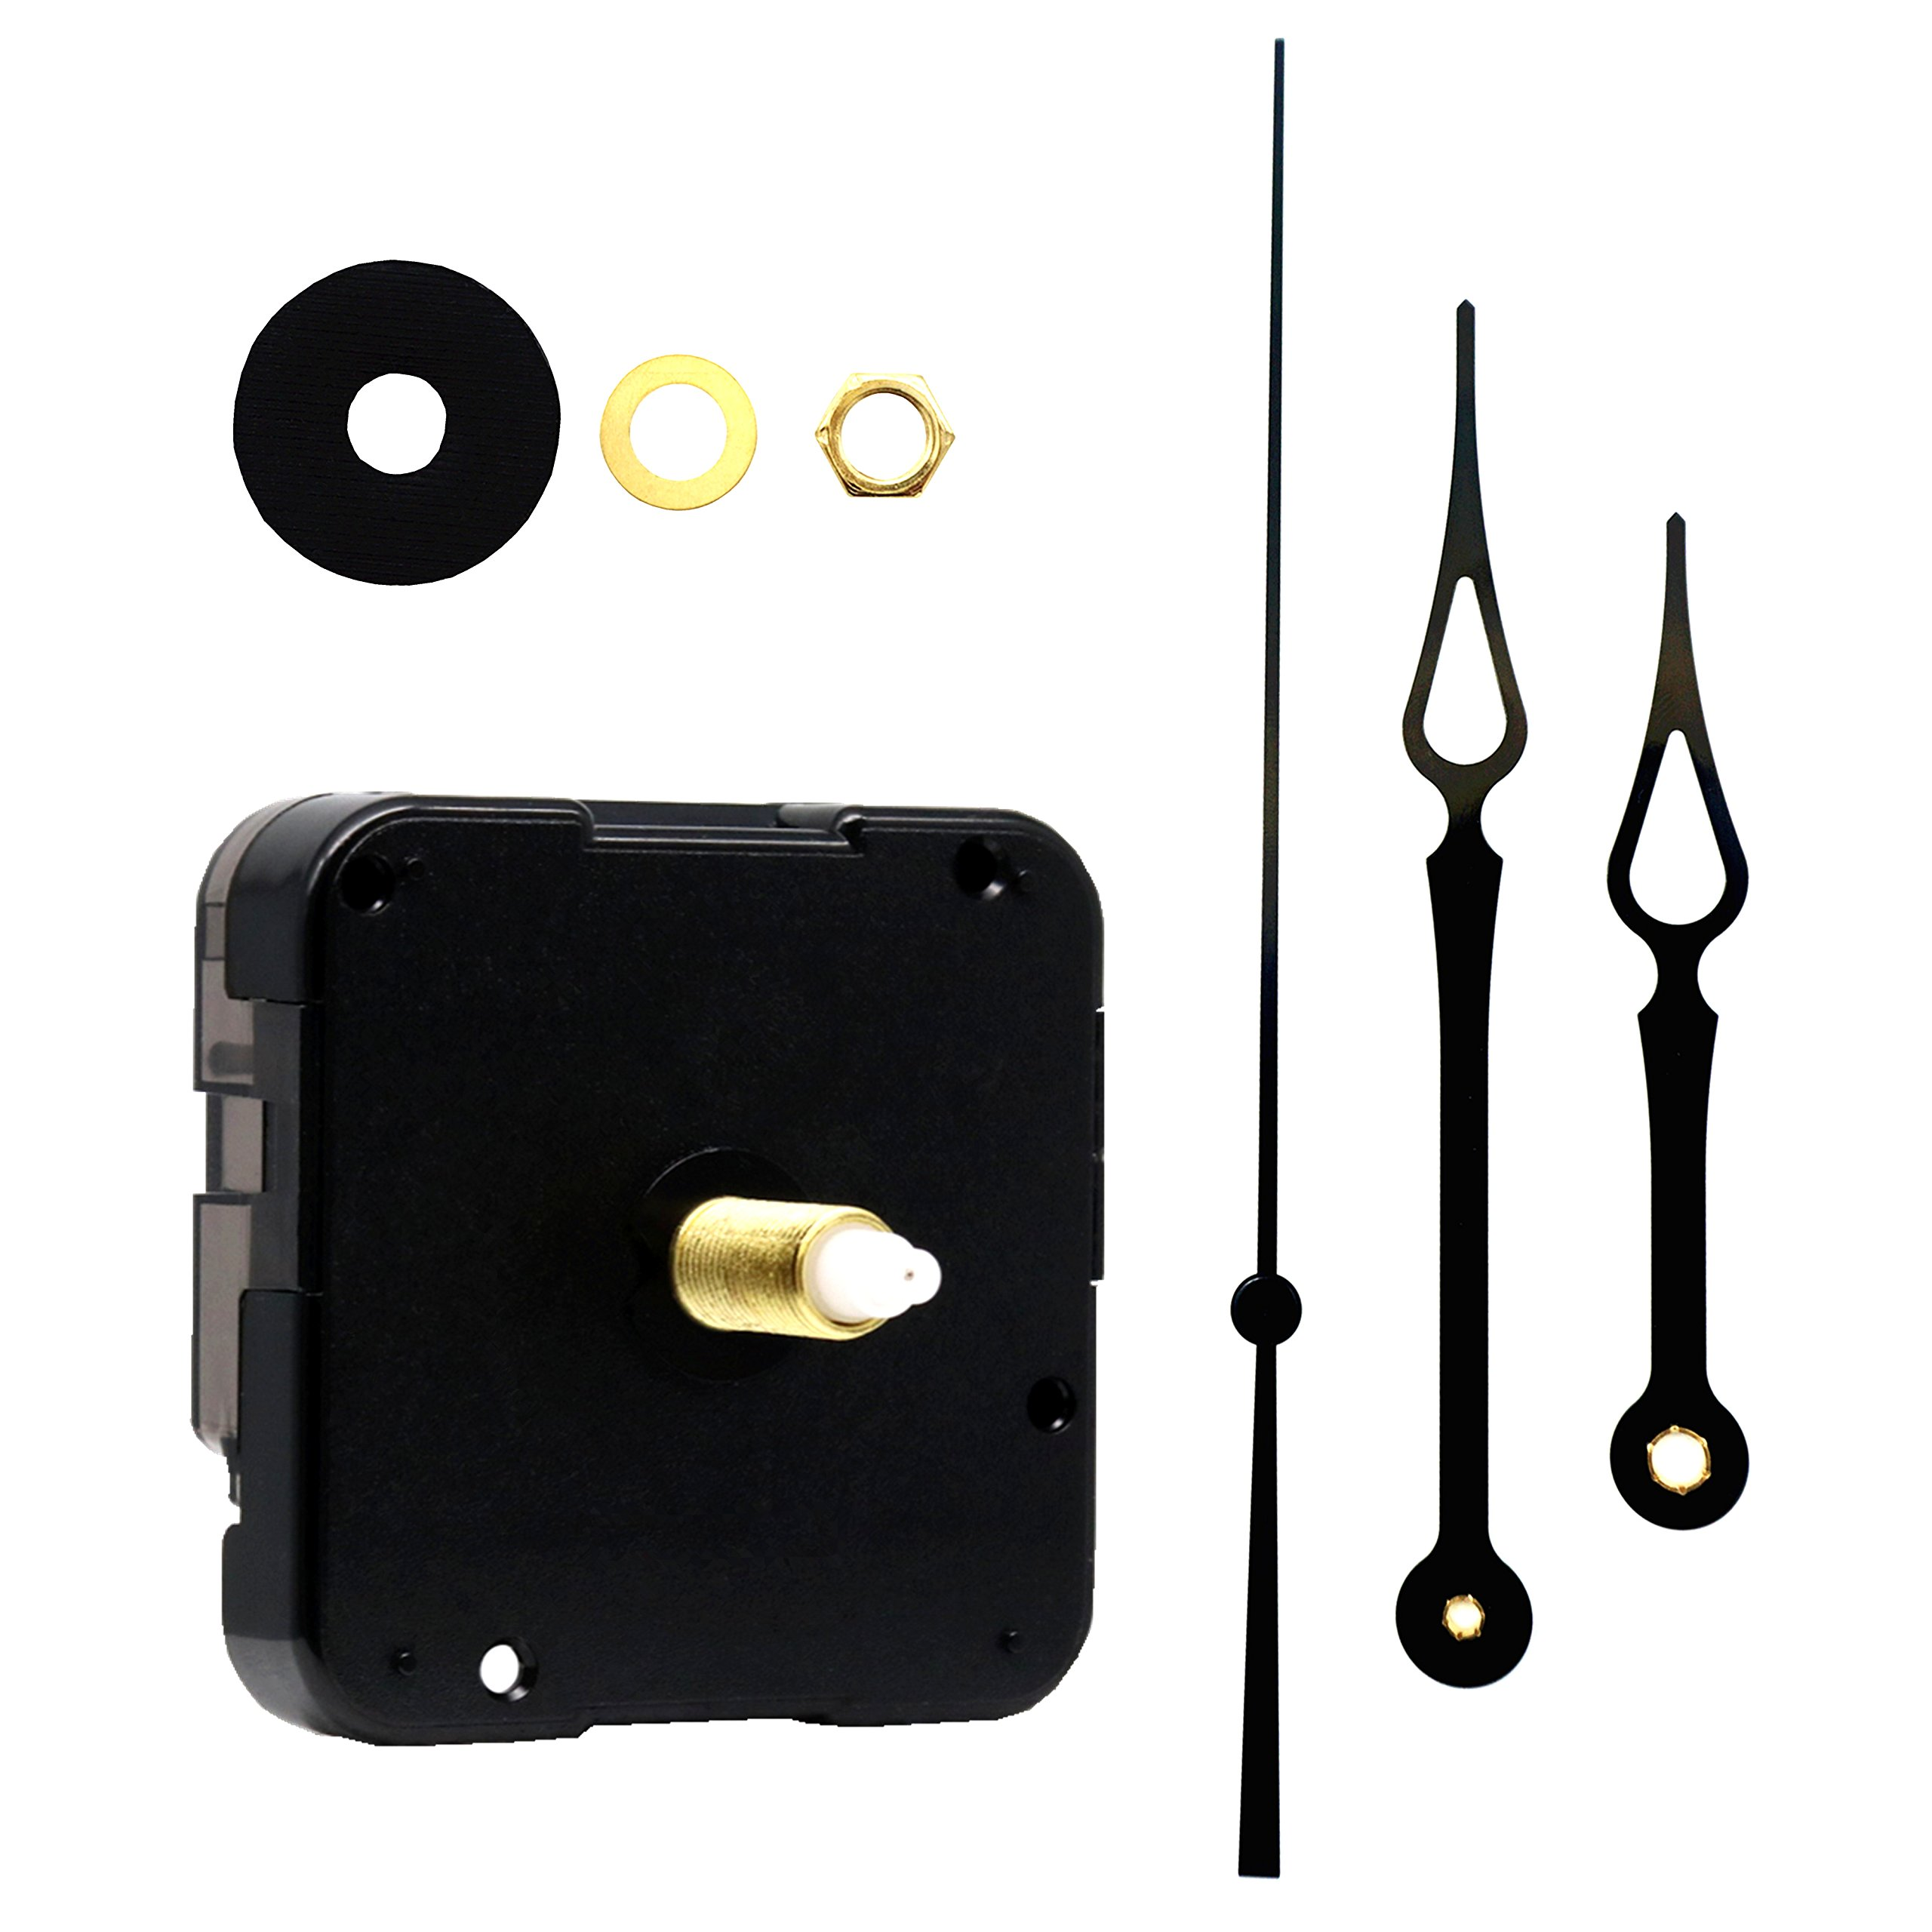 Youngtown 12888 Quartz DIY Wall Clock Movement Mechanism Repair Parts Replacement Kit Sweep Silent Movement,13mm (1/2 inch) Maximum Dial Thickness, 23mm (29/32 inch) Total Shaft Length.